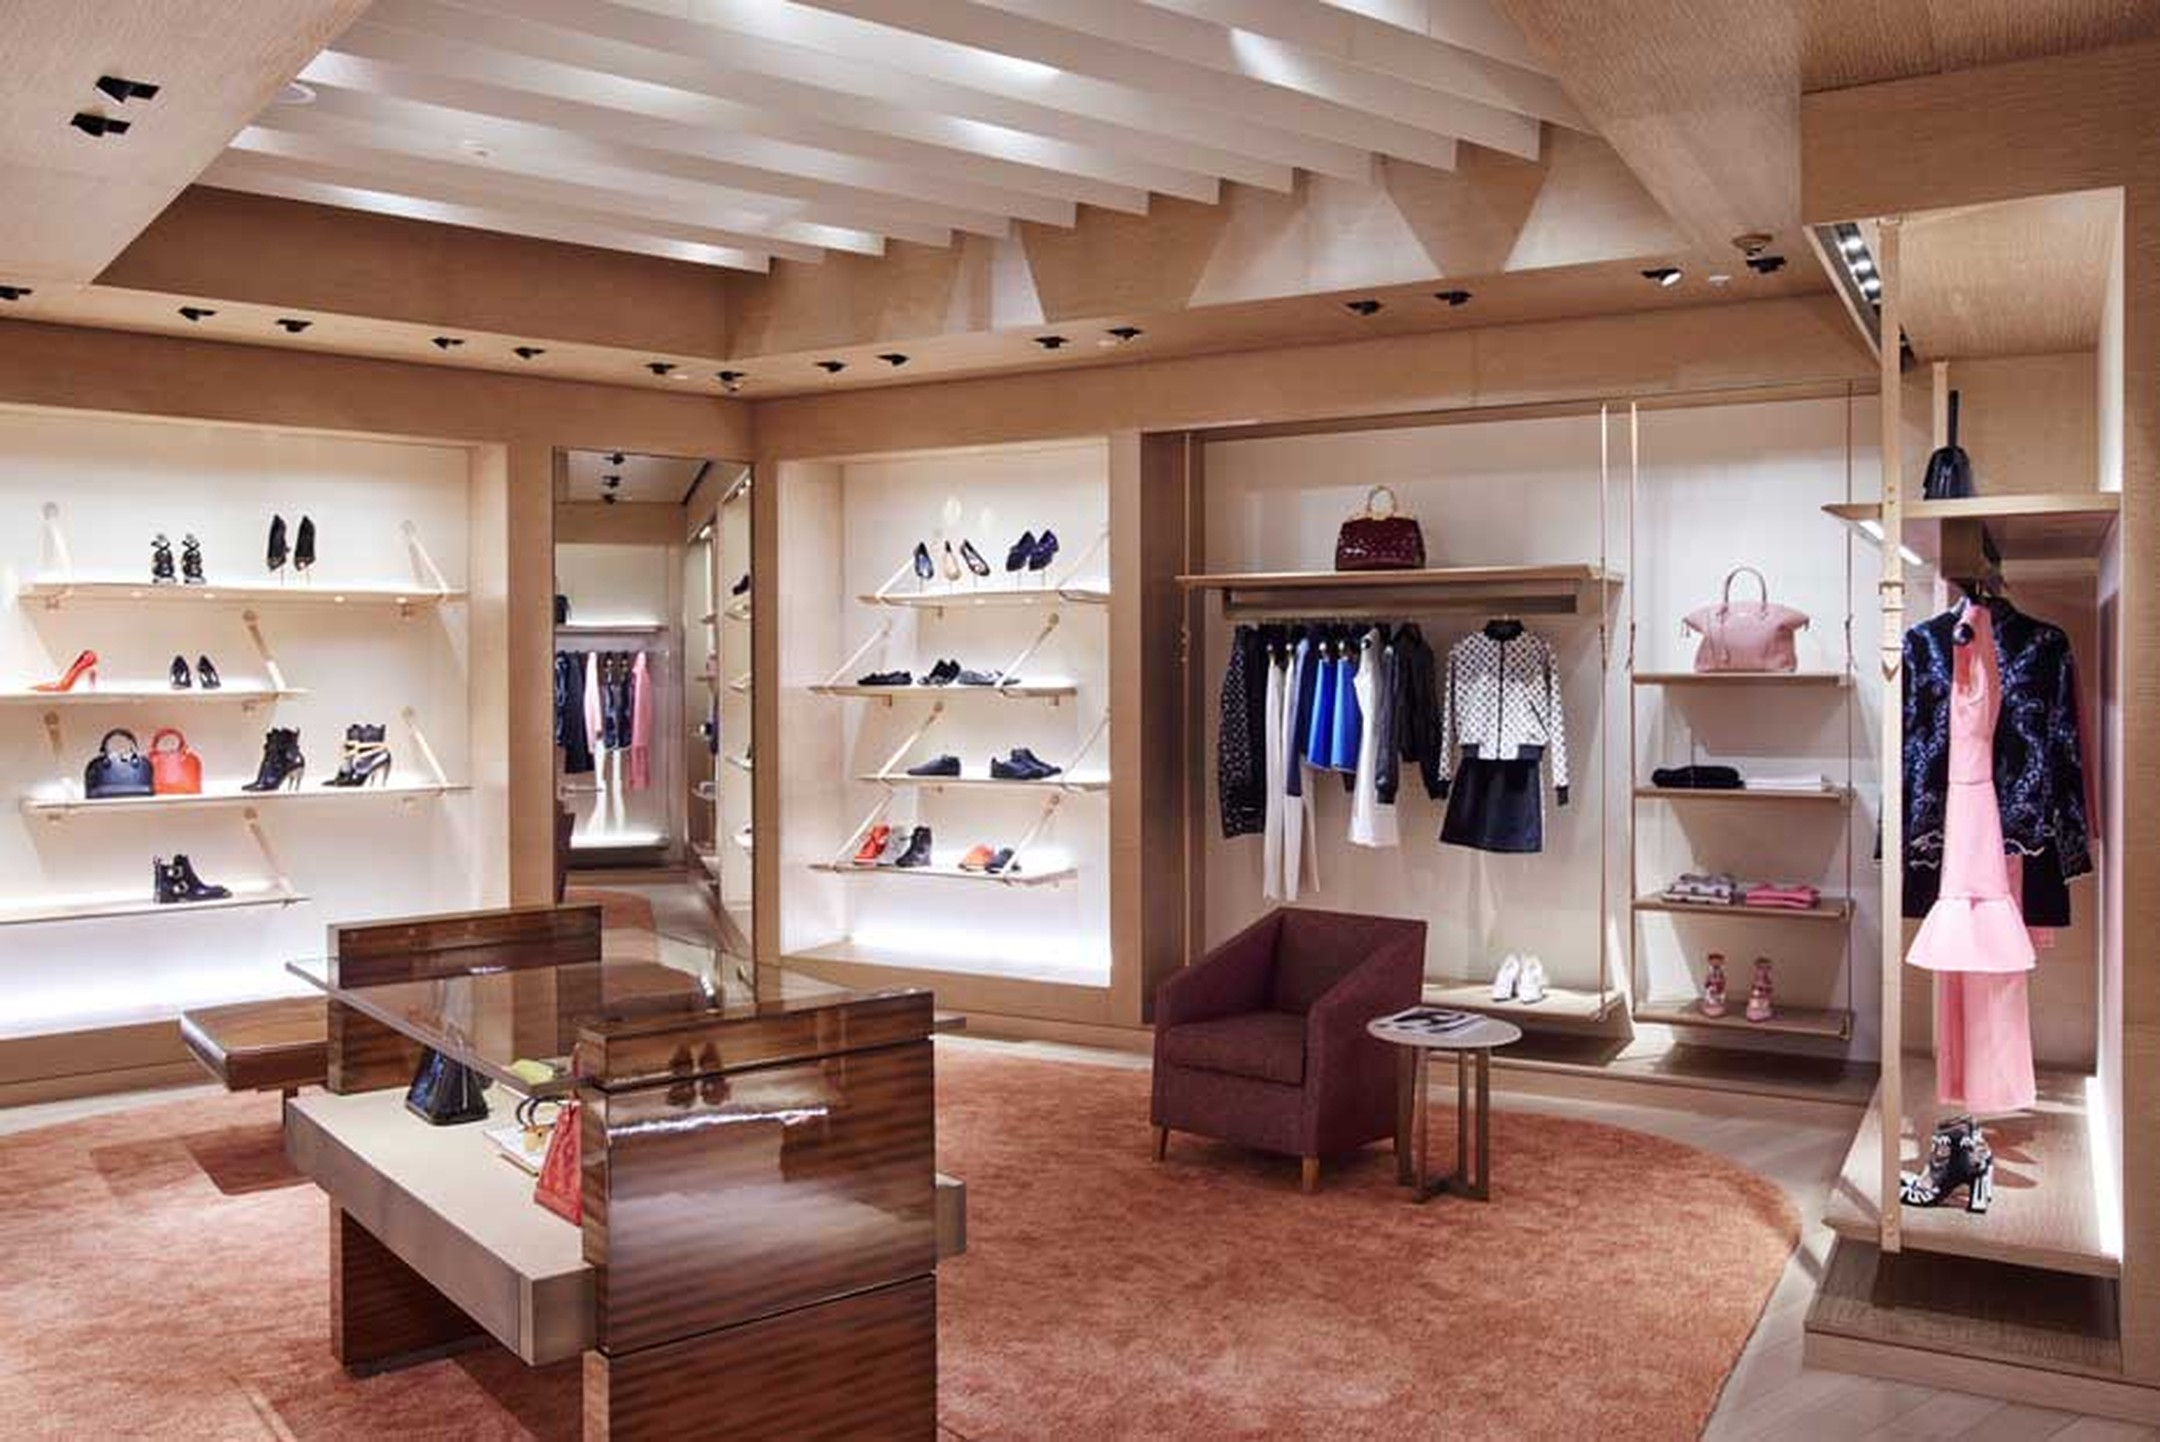 Louis Vuitton's 301sq m store in Terminal 5 sells fine jewellery, watches and a selection of the maison's leather goods, women's ready-to-wear, shoes, accessories and sunglasses.